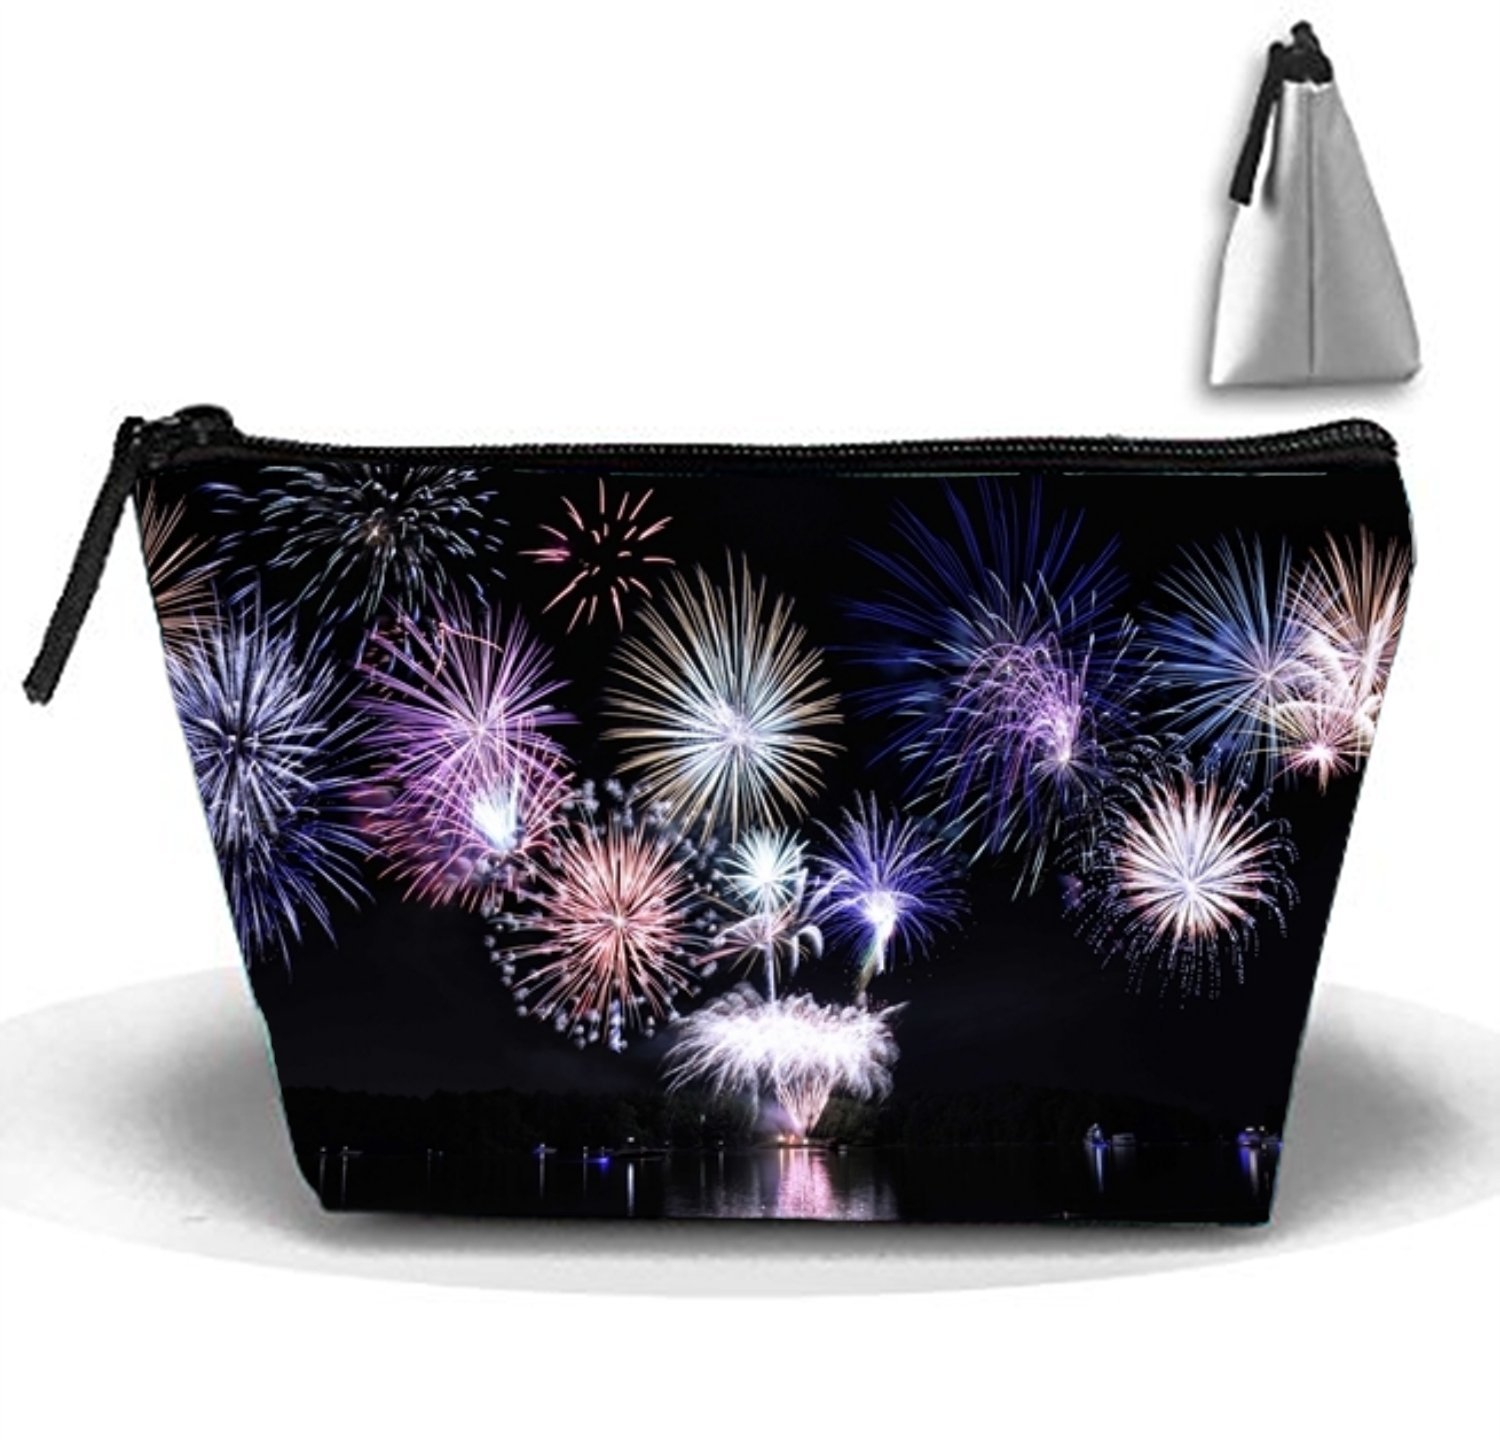 5ec3a2314c6e Amazon.com : Cosmetic Bags Travel Portable Makeup Pouch Fireworks At ...